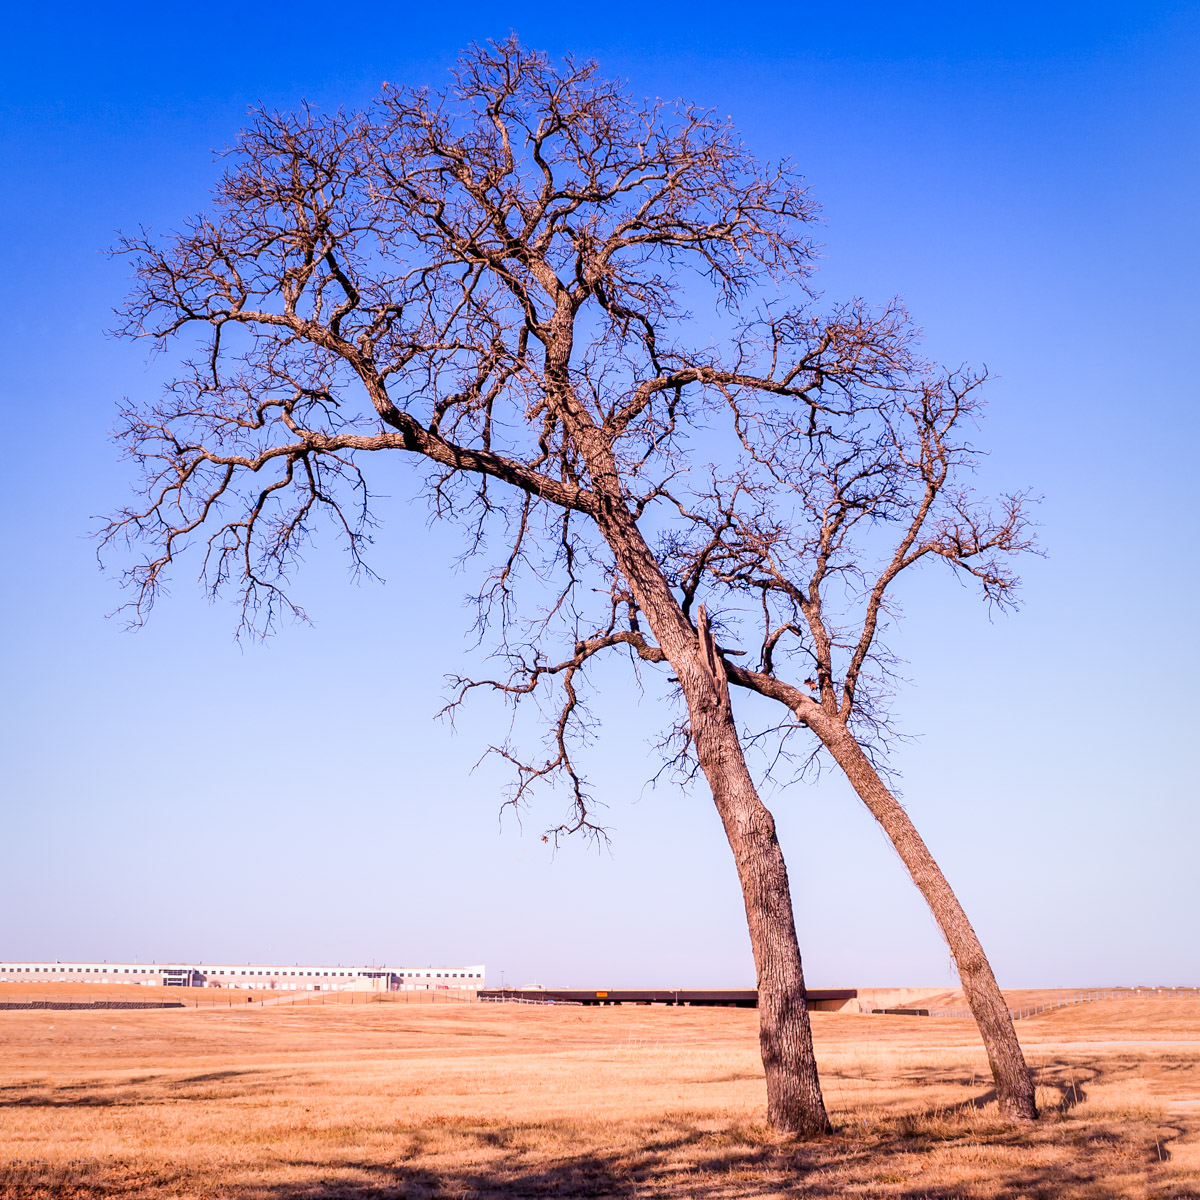 These presumably wind-swept trees were spotted at on the outlying property of DFW International Airport.